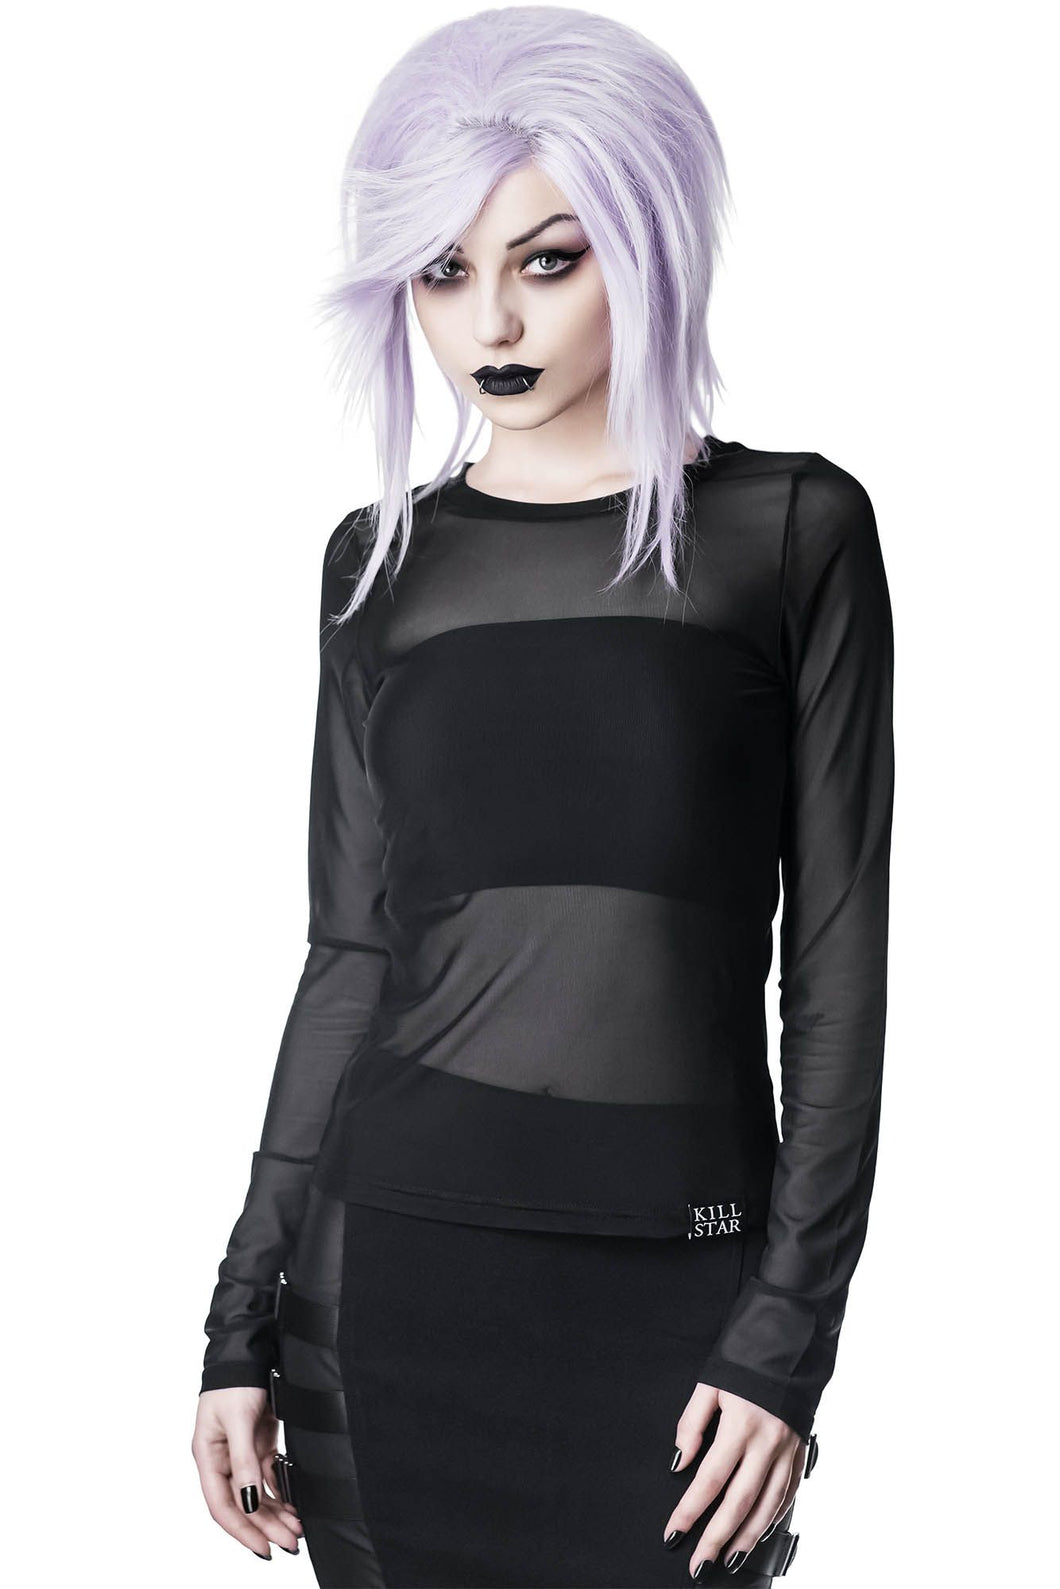 Killstar Bytes Mesh Top - Kate's Clothing